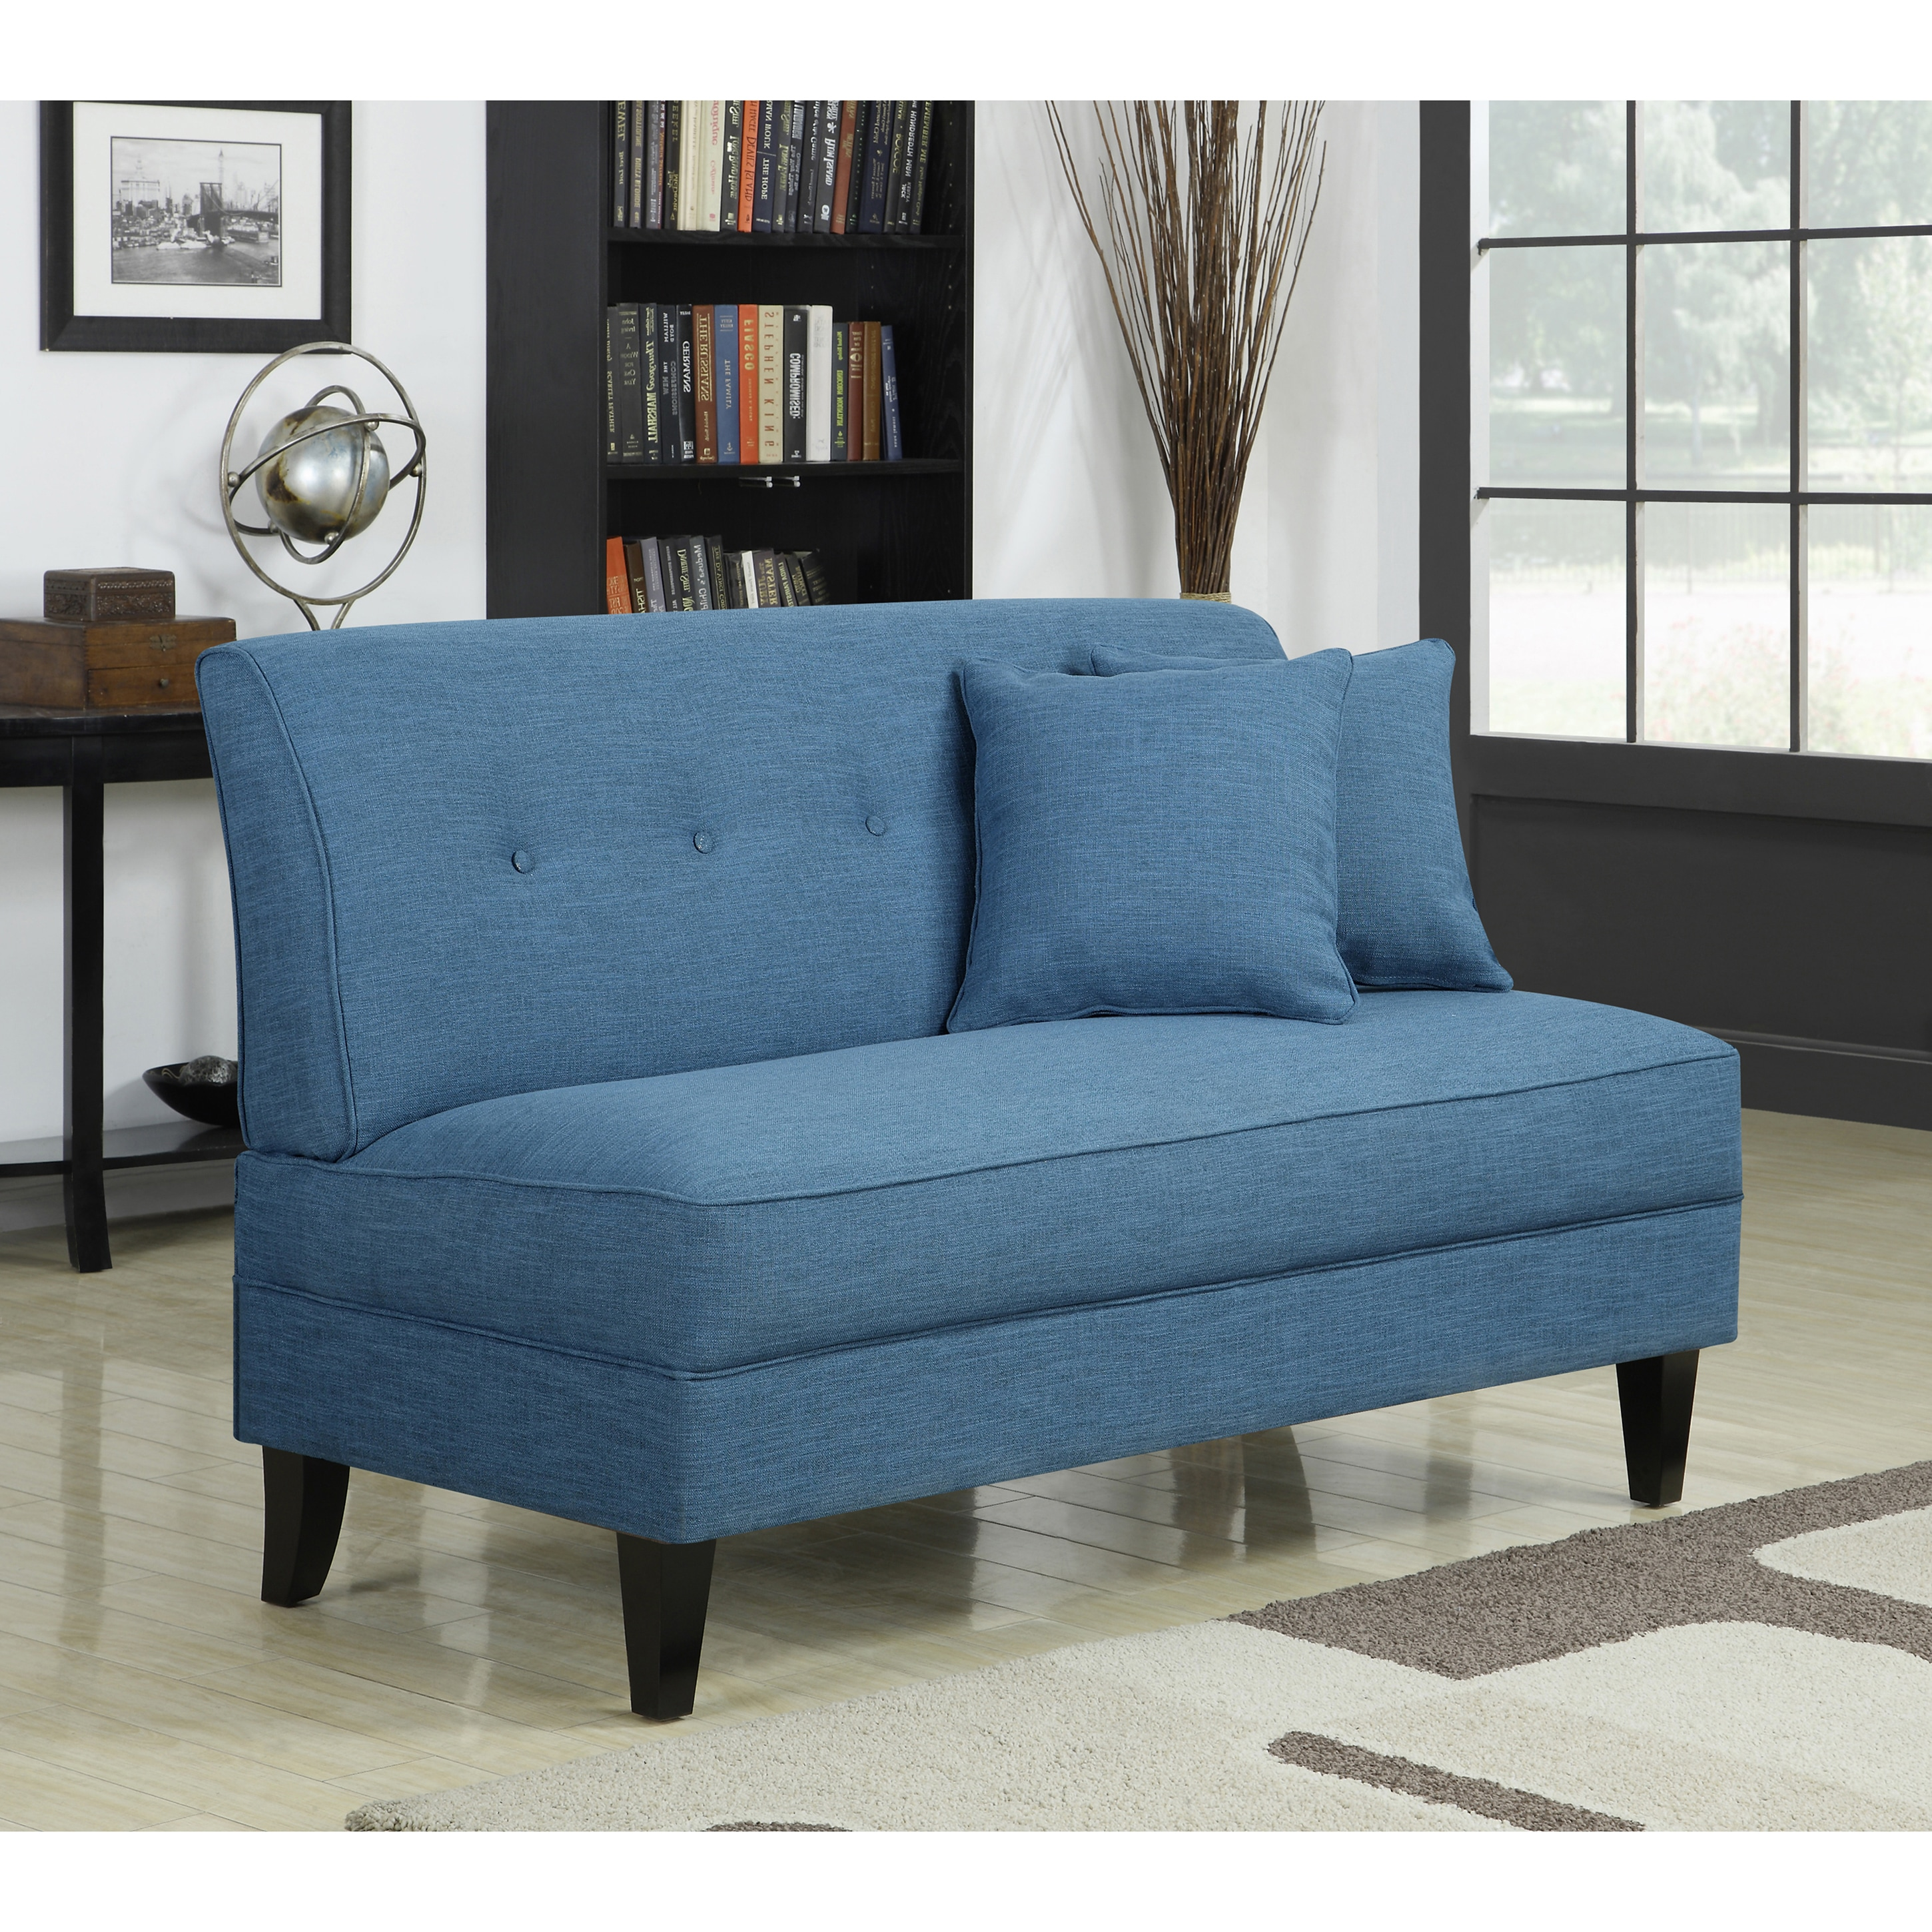 Shop handy living engle caribbean blue linen armless loveseat free shipping on orders over 45 overstock com 7291878